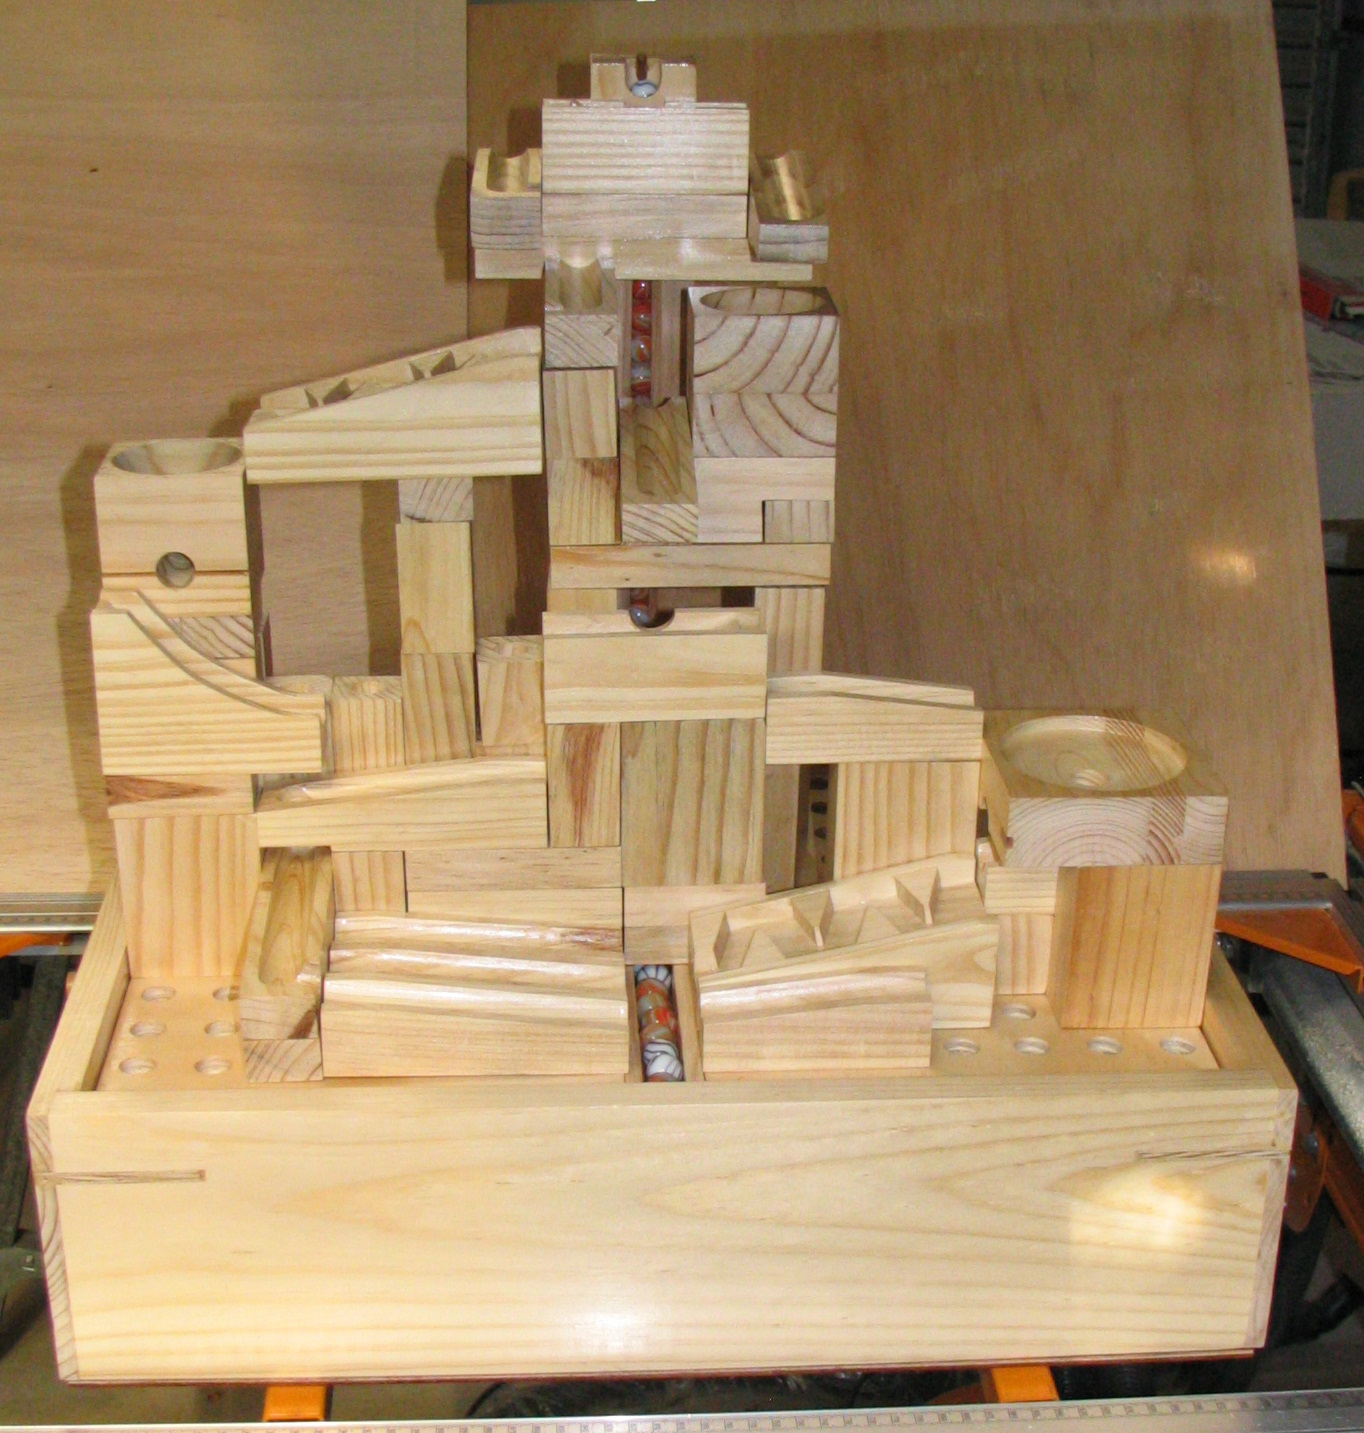 Some pics of a marble machine built by me to plans by matthias wandel